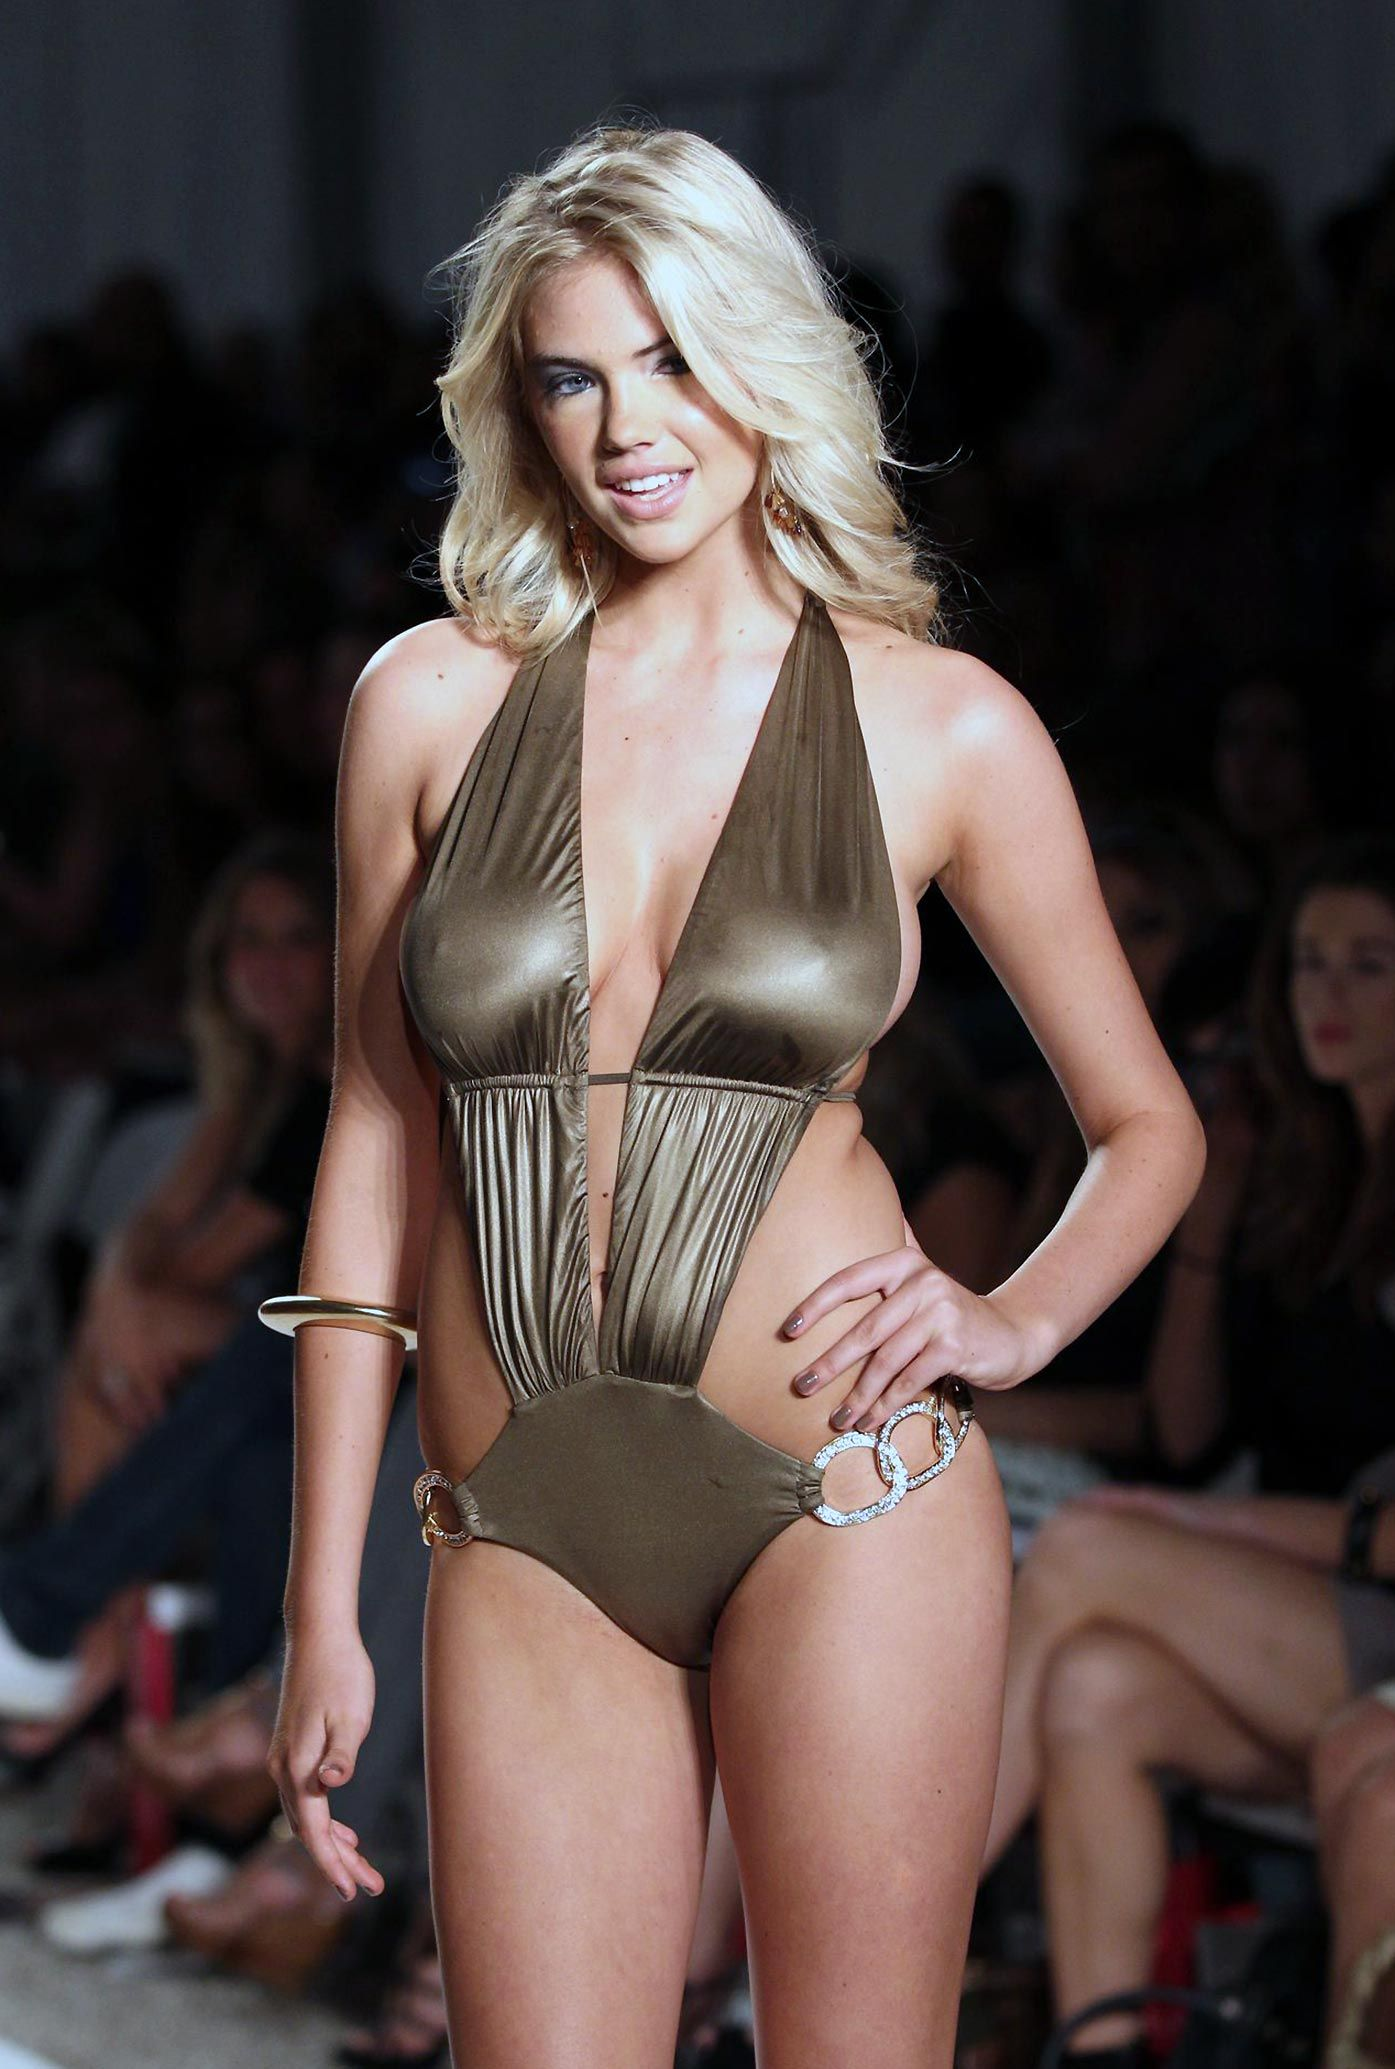 Kate Upton Nude Leaked The Fappening 0078